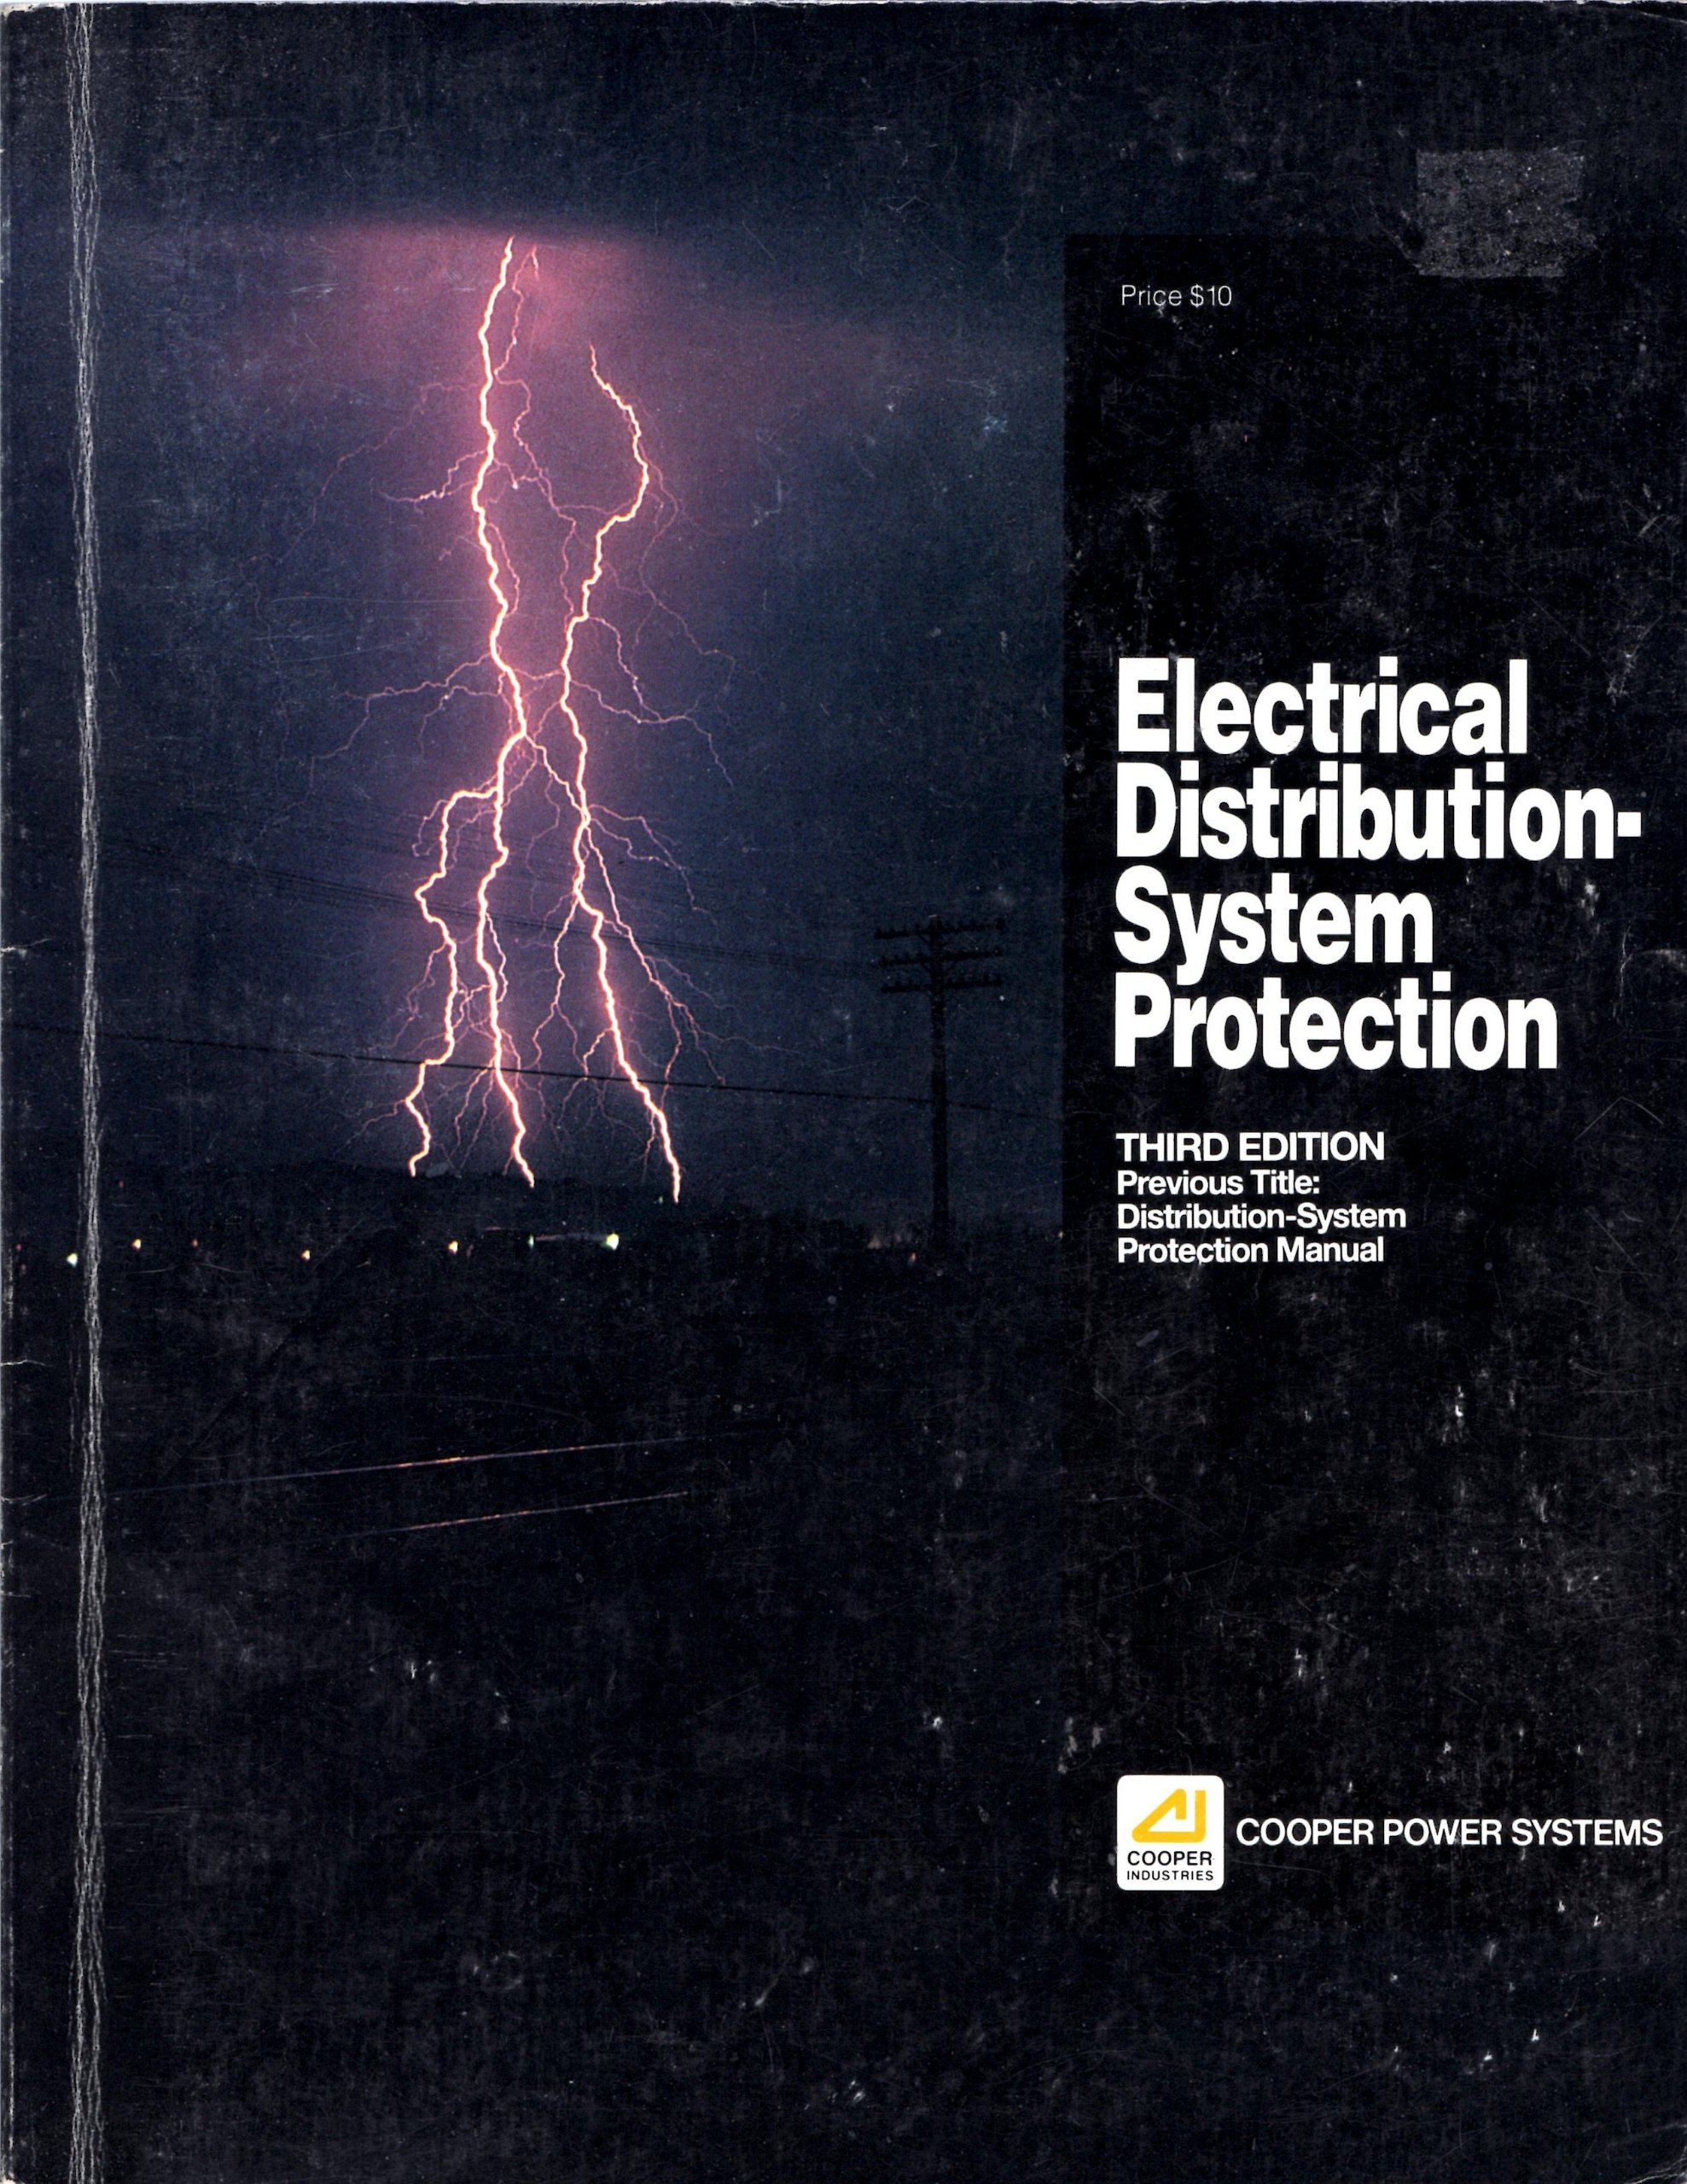 Electrical Distribution-System Protection Third Edition: Amazon.com: Books